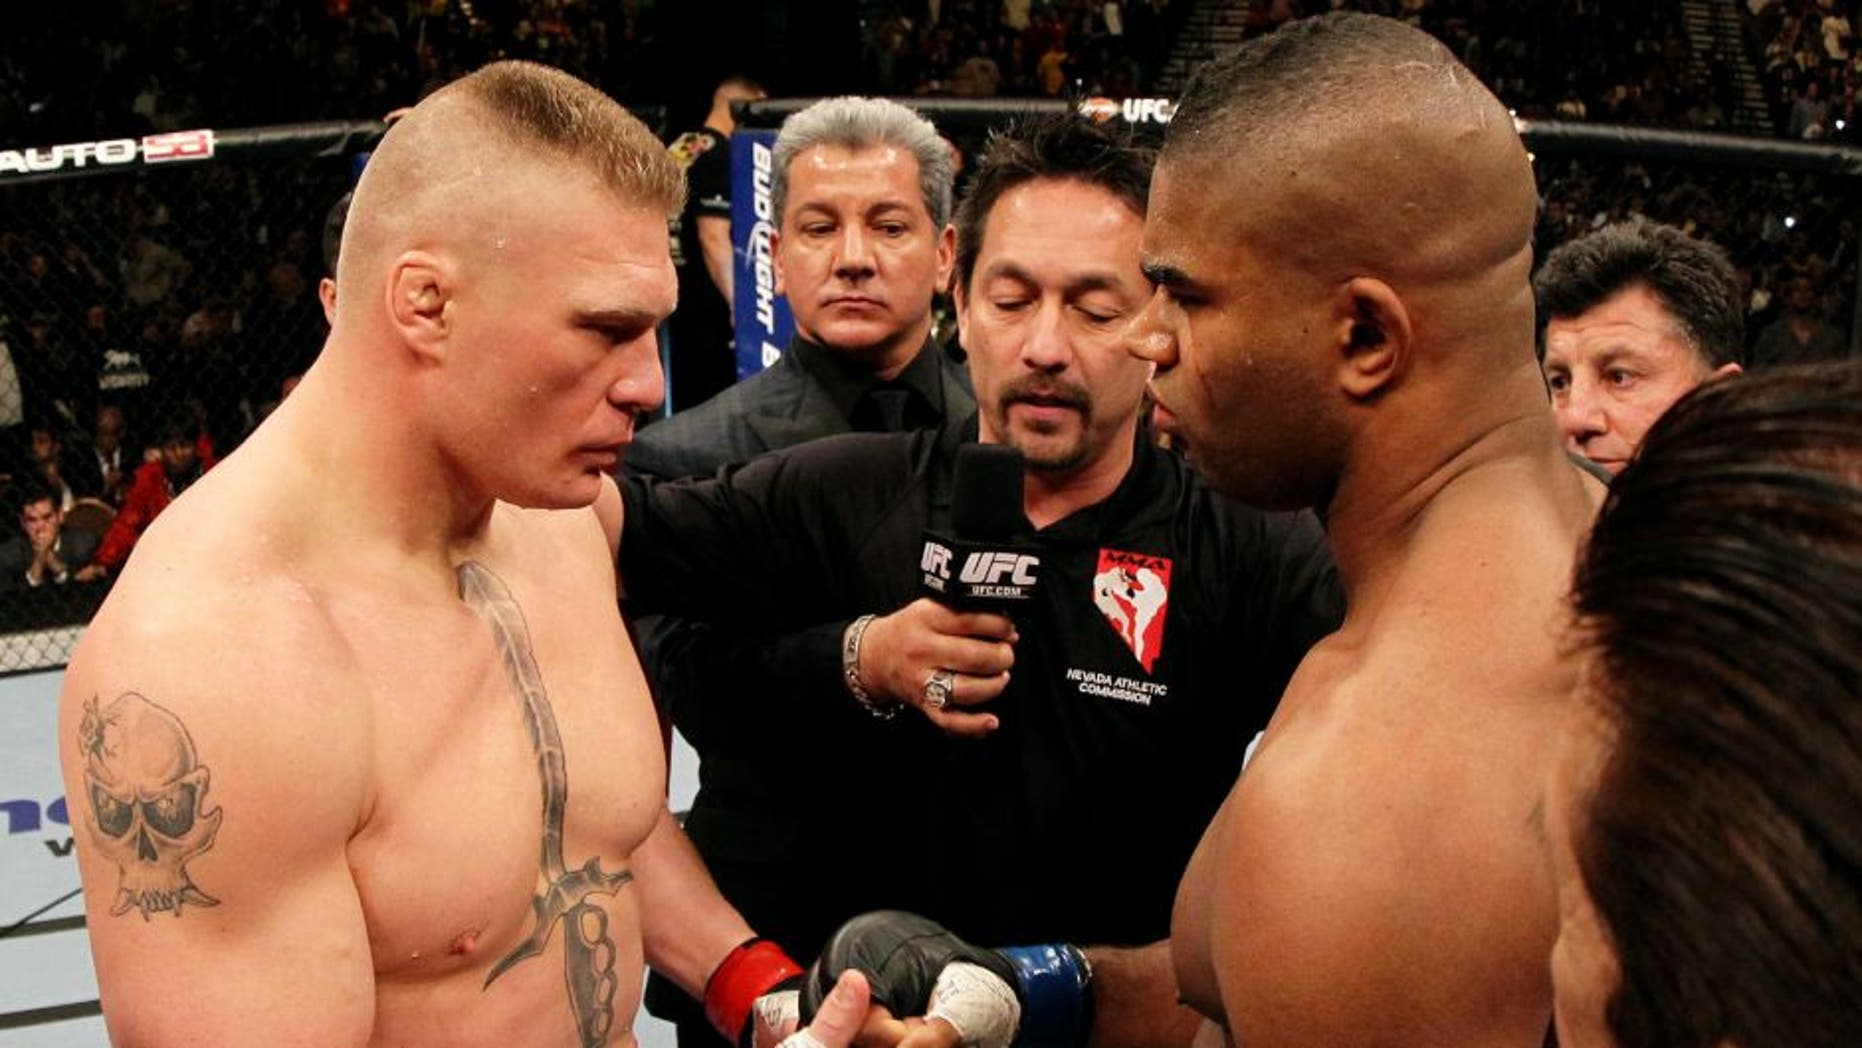 LAS VEGAS, NV - DECEMBER 30: (L-R) Heavyweight opponents Brock Lesnar and Alistair Overeem receive final instructions from the referee before their main event bout during the UFC 141 event at the MGM Grand Garden Arena on December 30, 2011 in Las Vegas, Nevada. (Photo by Josh Hedges/Zuffa LLC/Zuffa LLC via Getty Images)